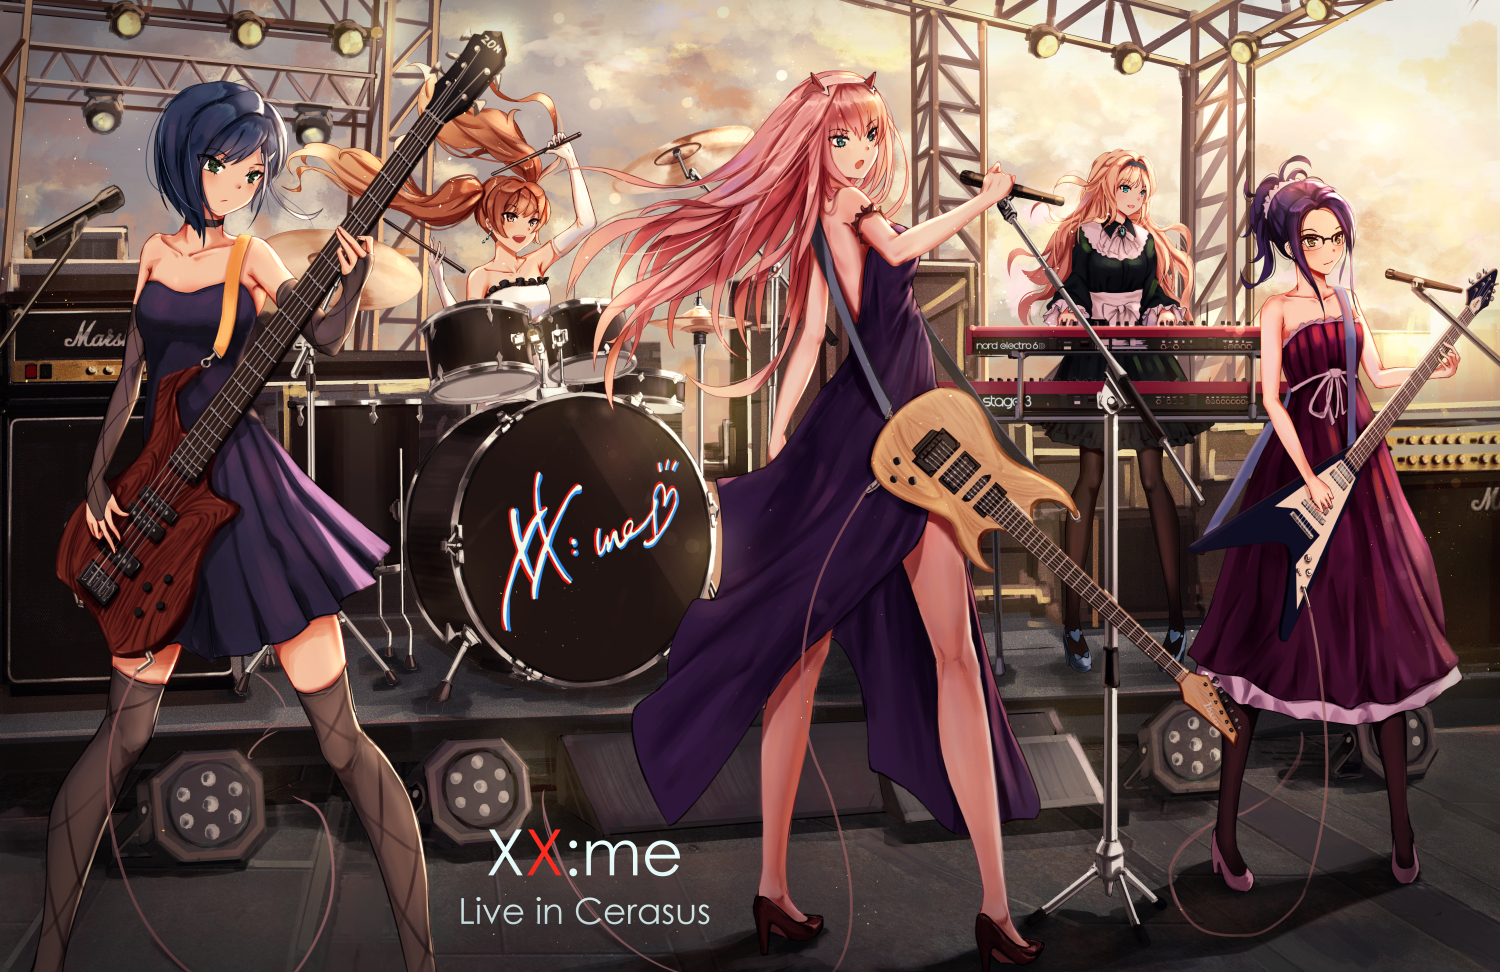 darling_in_the_franxx dress drums group guitar horns ichigo_(darling_in_the_franxx) ikuno_(darling_in_the_franxx) instrument kokoro_(darling_in_the_franxx) microphone miku_(darling_in_the_franxx) moon_yuzuriha piano thighhighs twintails zero_two